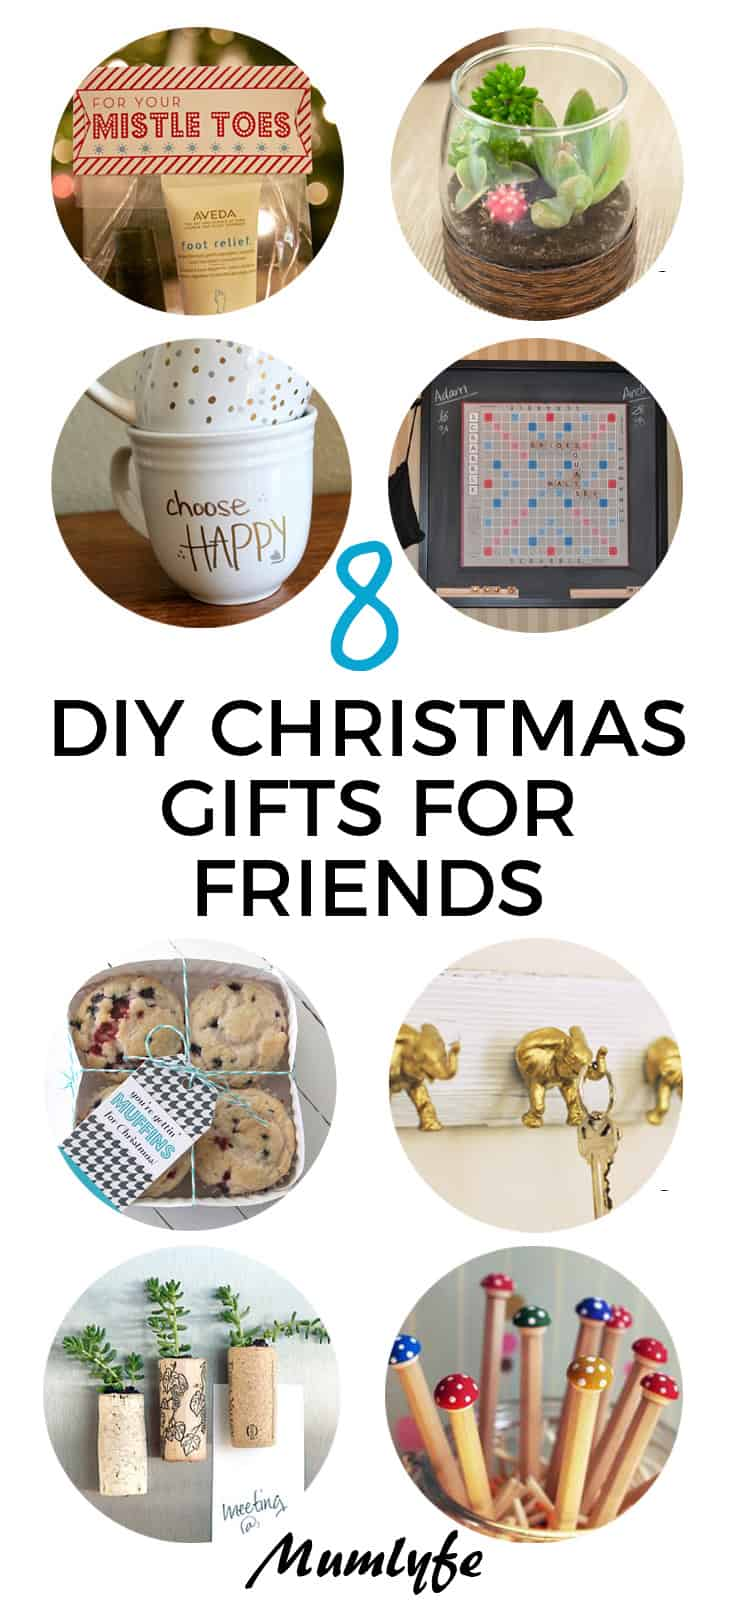 DIY Christmas Gifts for Friends - easy to make tutorials